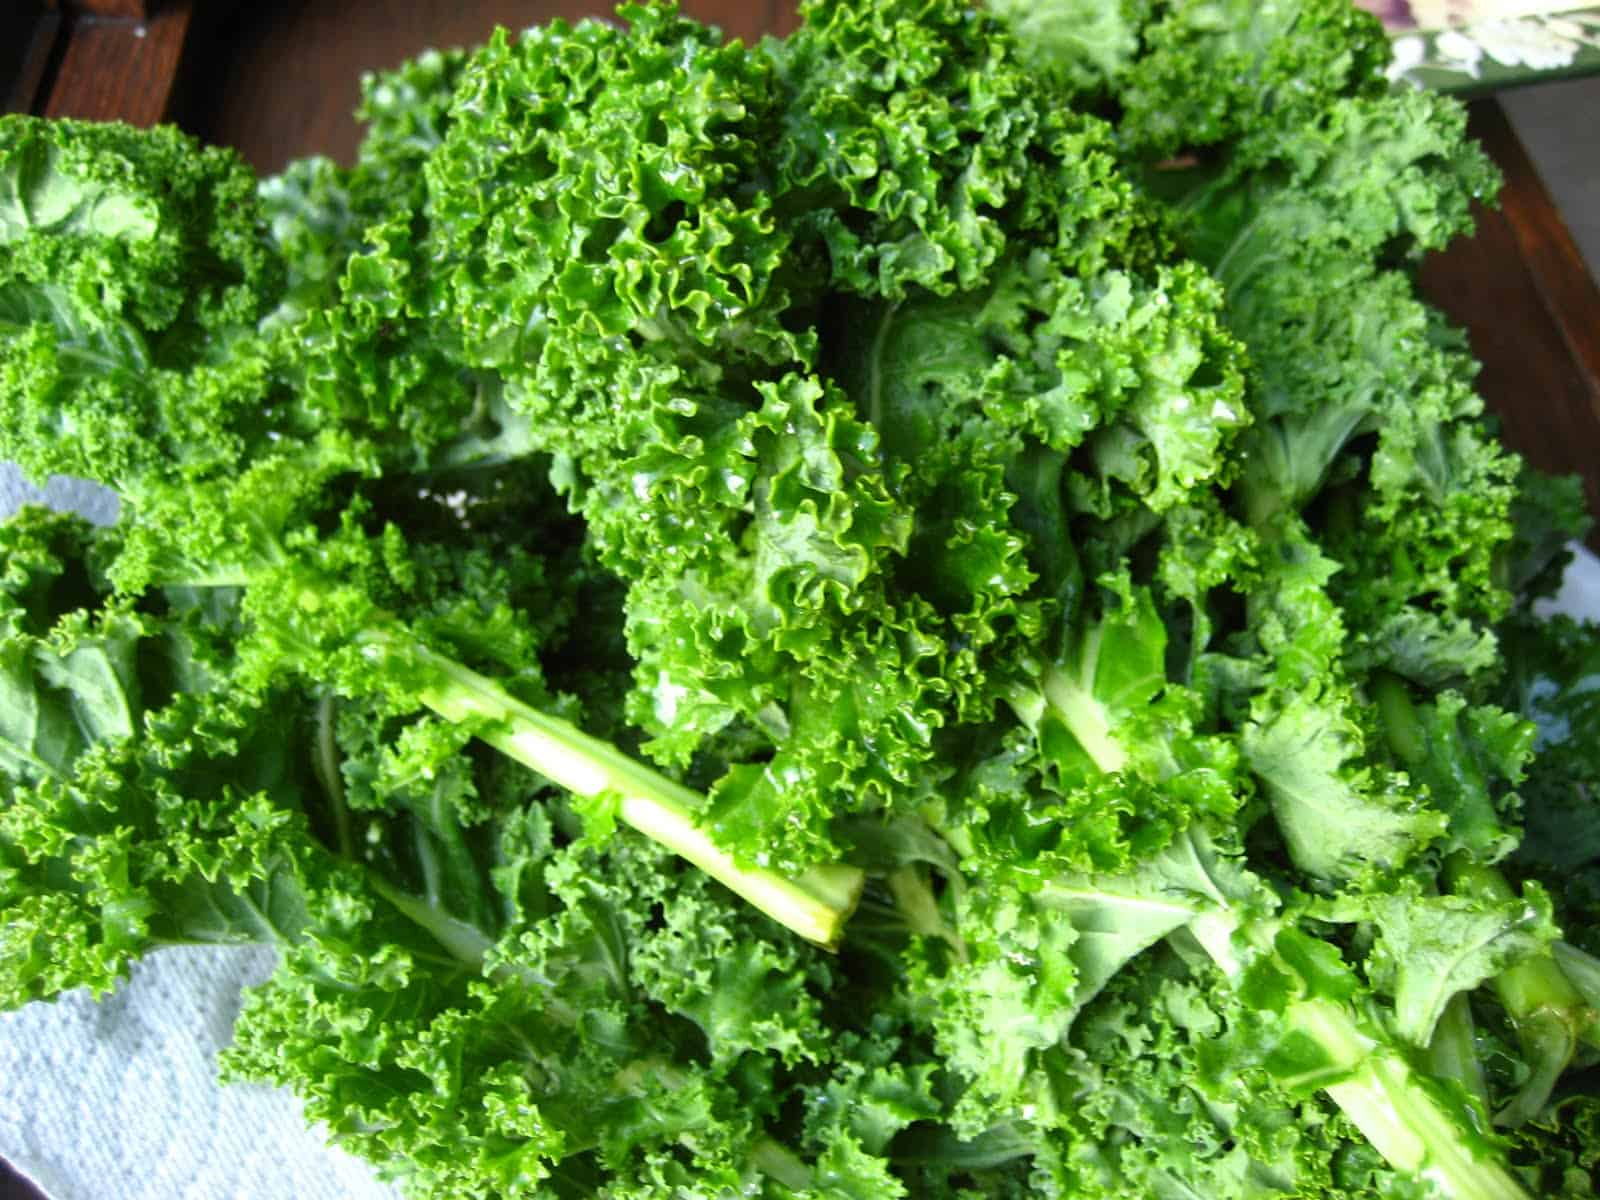 Getting Your Greens With Kale